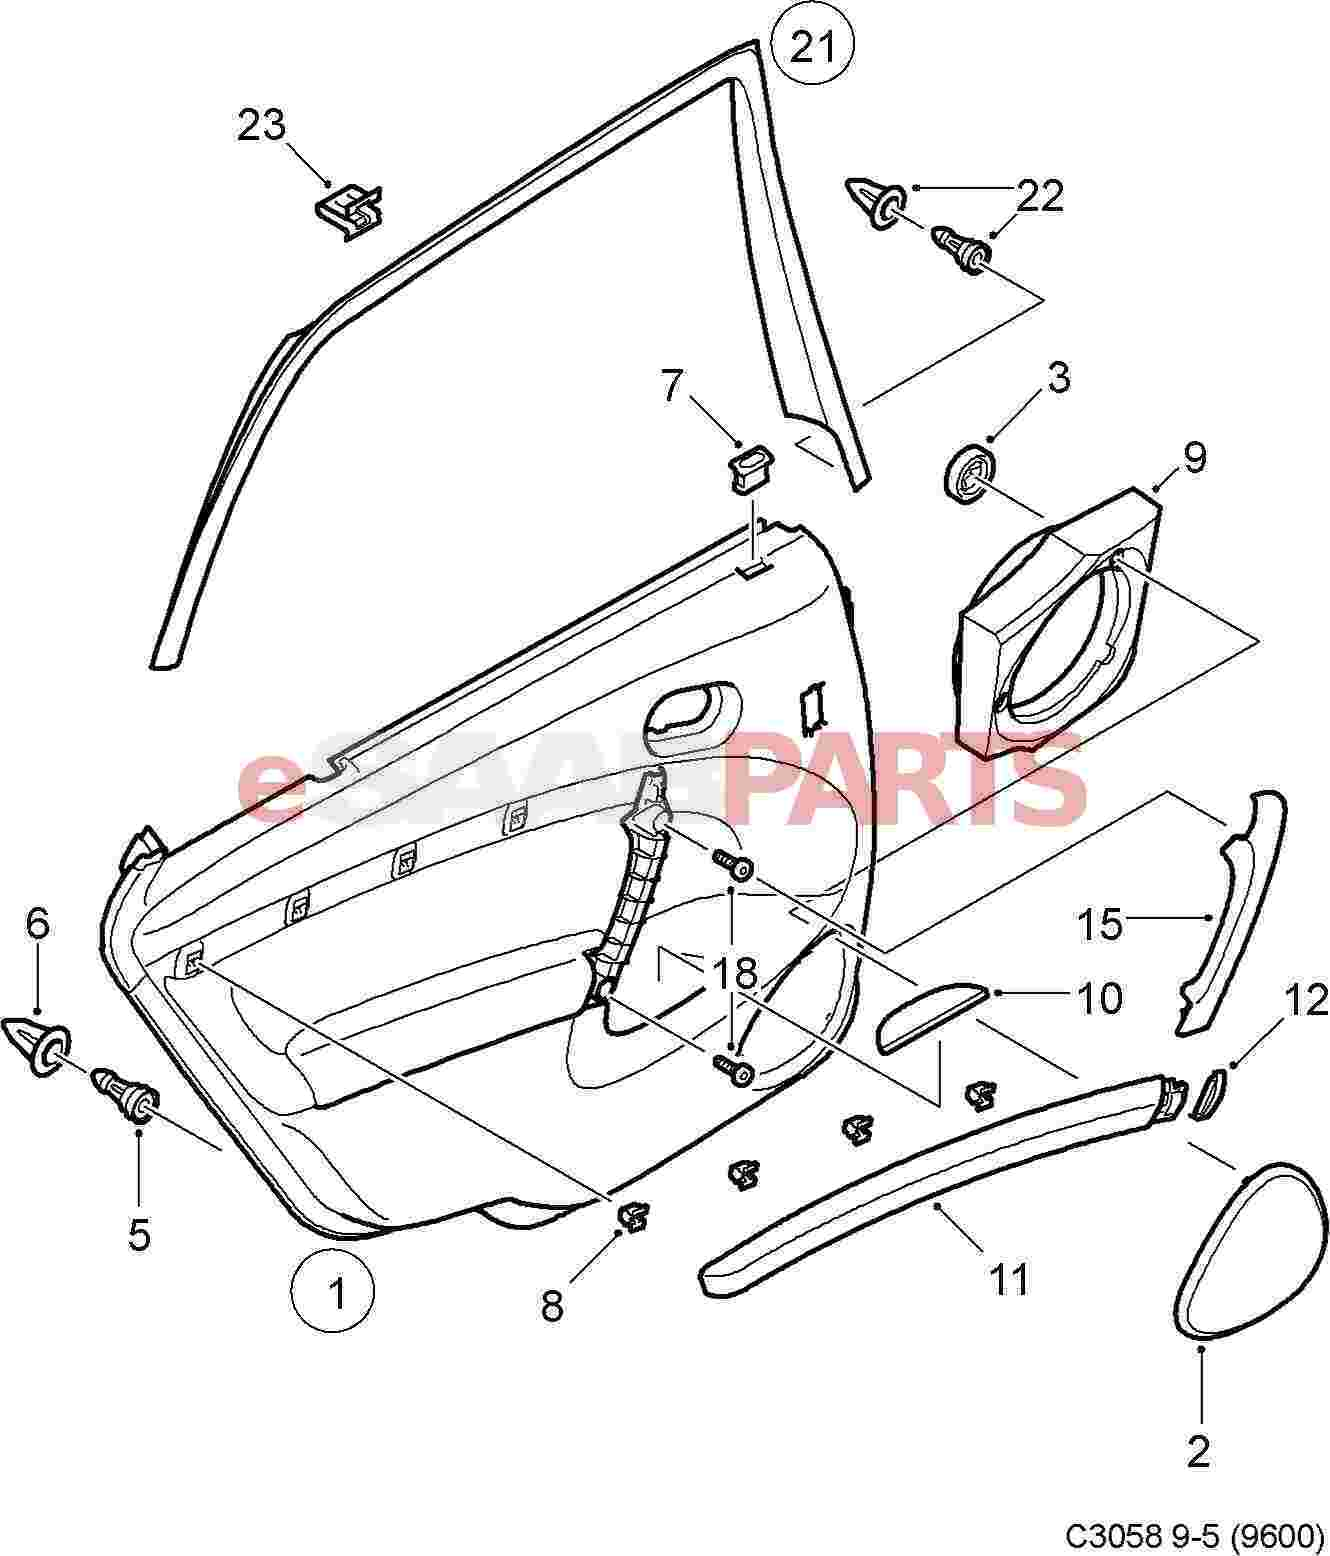 2002 Saab 9 5 Engine Diagram in addition 2006 Mazda 3 2 3l Belt Diagram Html besides 2014 Mazda 3 Timing Belt Or Chain also P 0996b43f80eb9d5b together with 5477872. on saab 3 0l turbo 2007